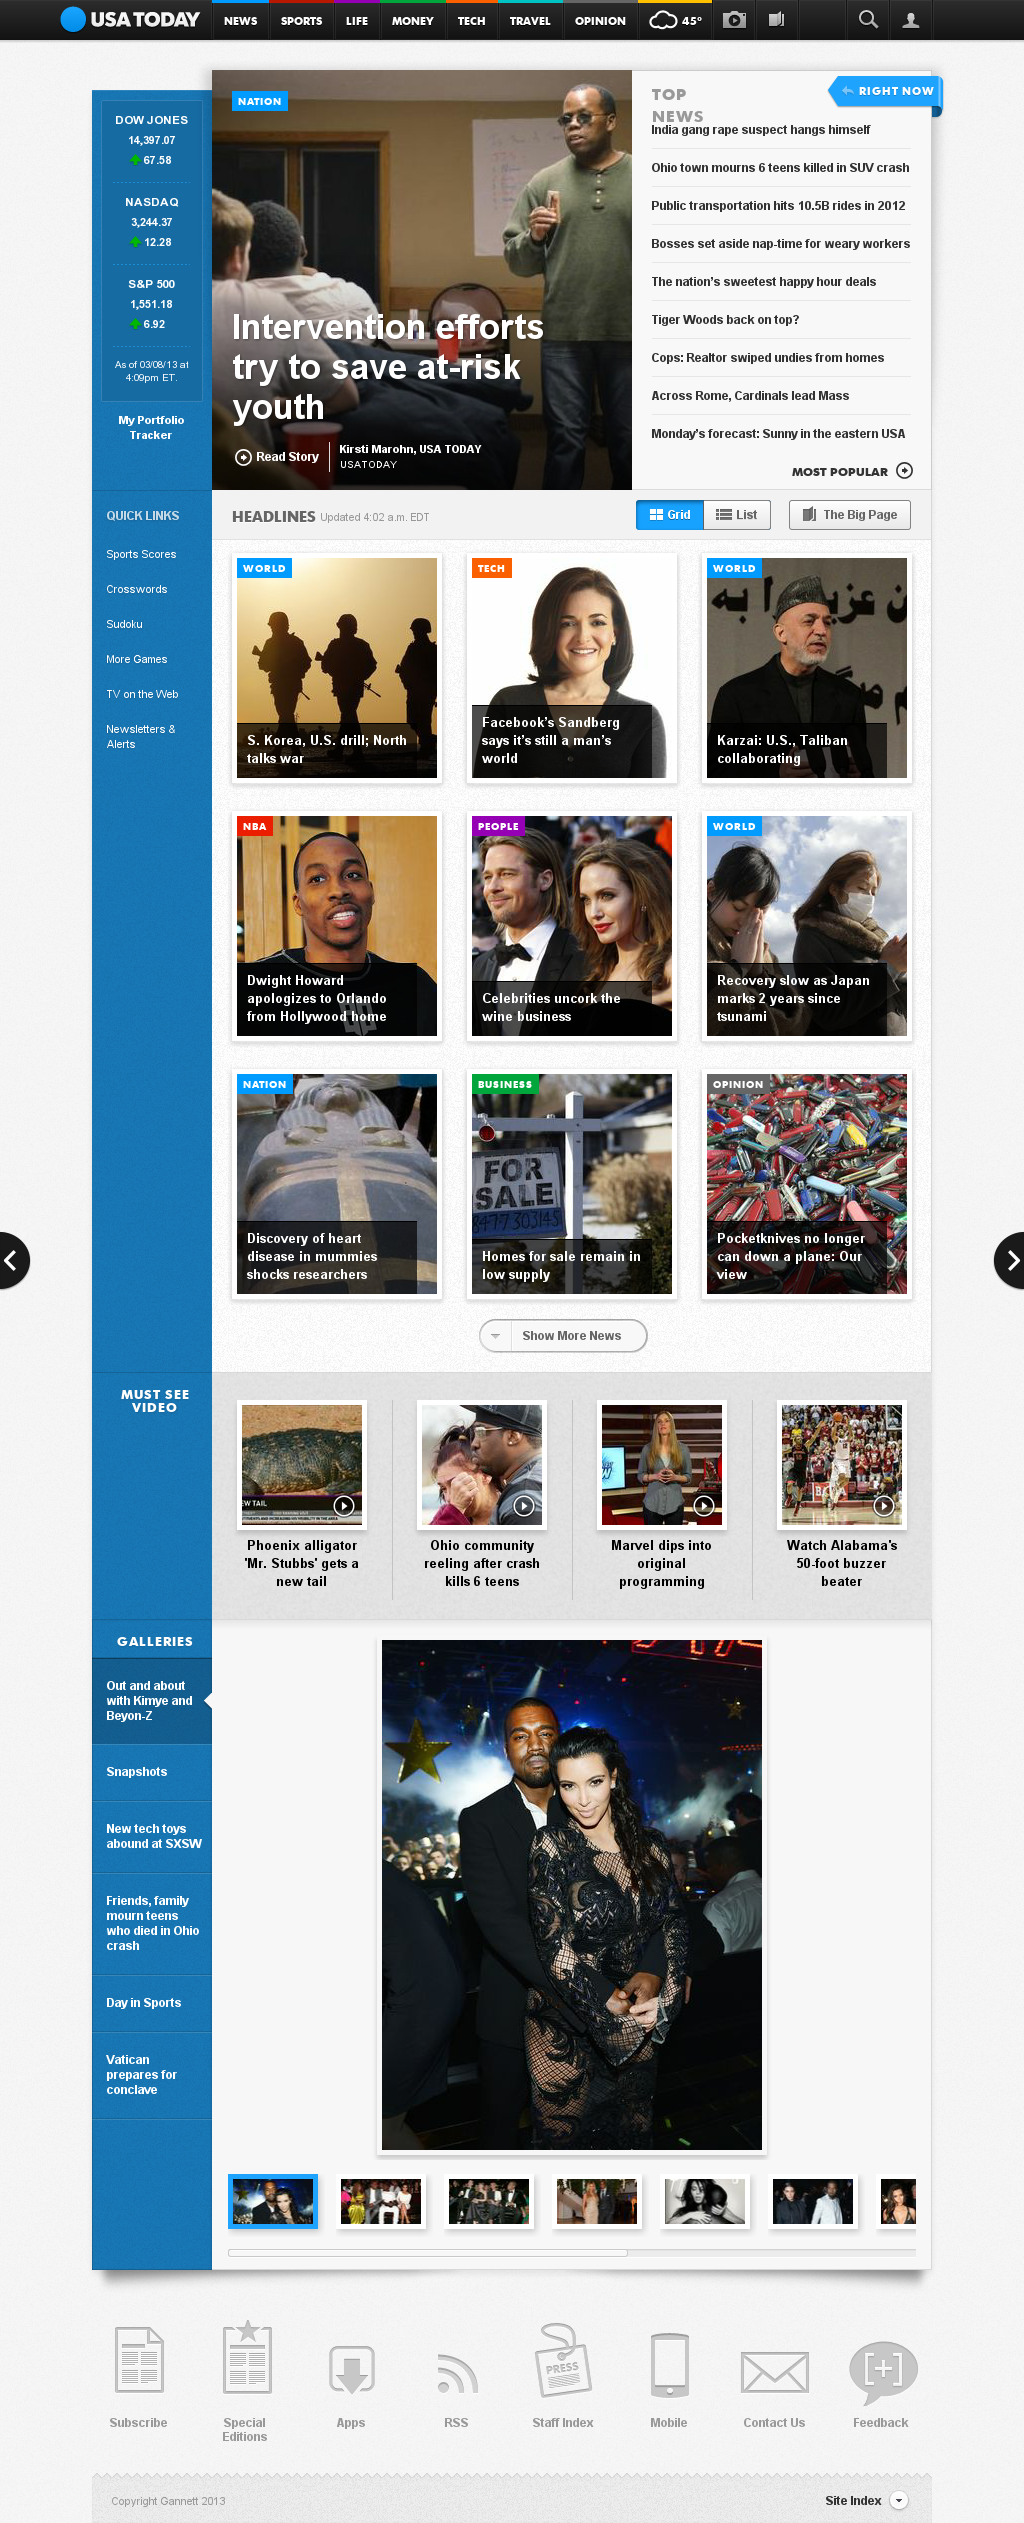 USA Today at Monday March 11, 2013, 8:22 a.m. UTC